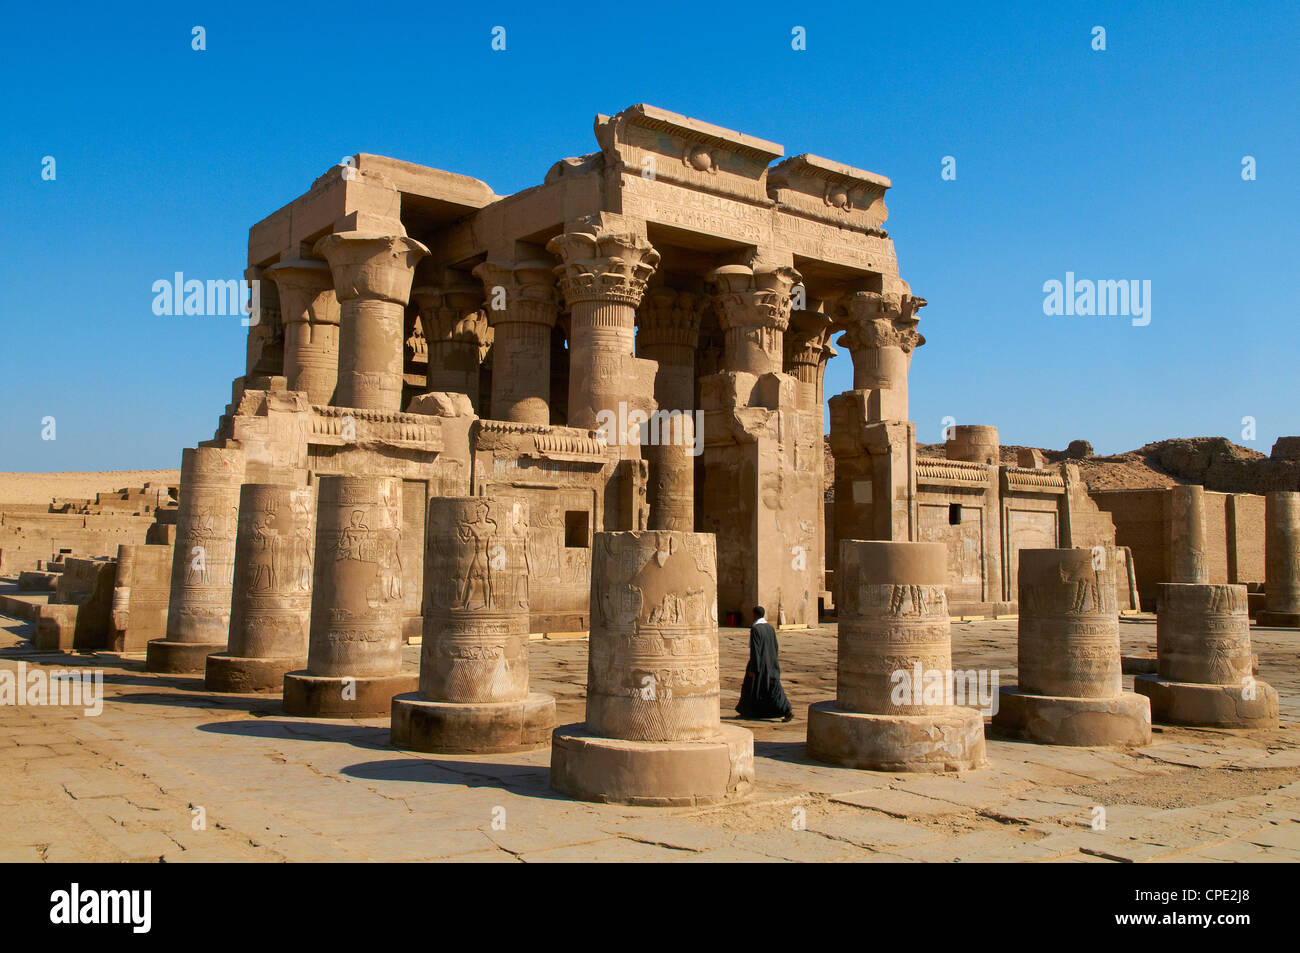 Temple of Sobek and Haroeris, Kom Ombo, Egypt, North Africa, Africa - Stock Image